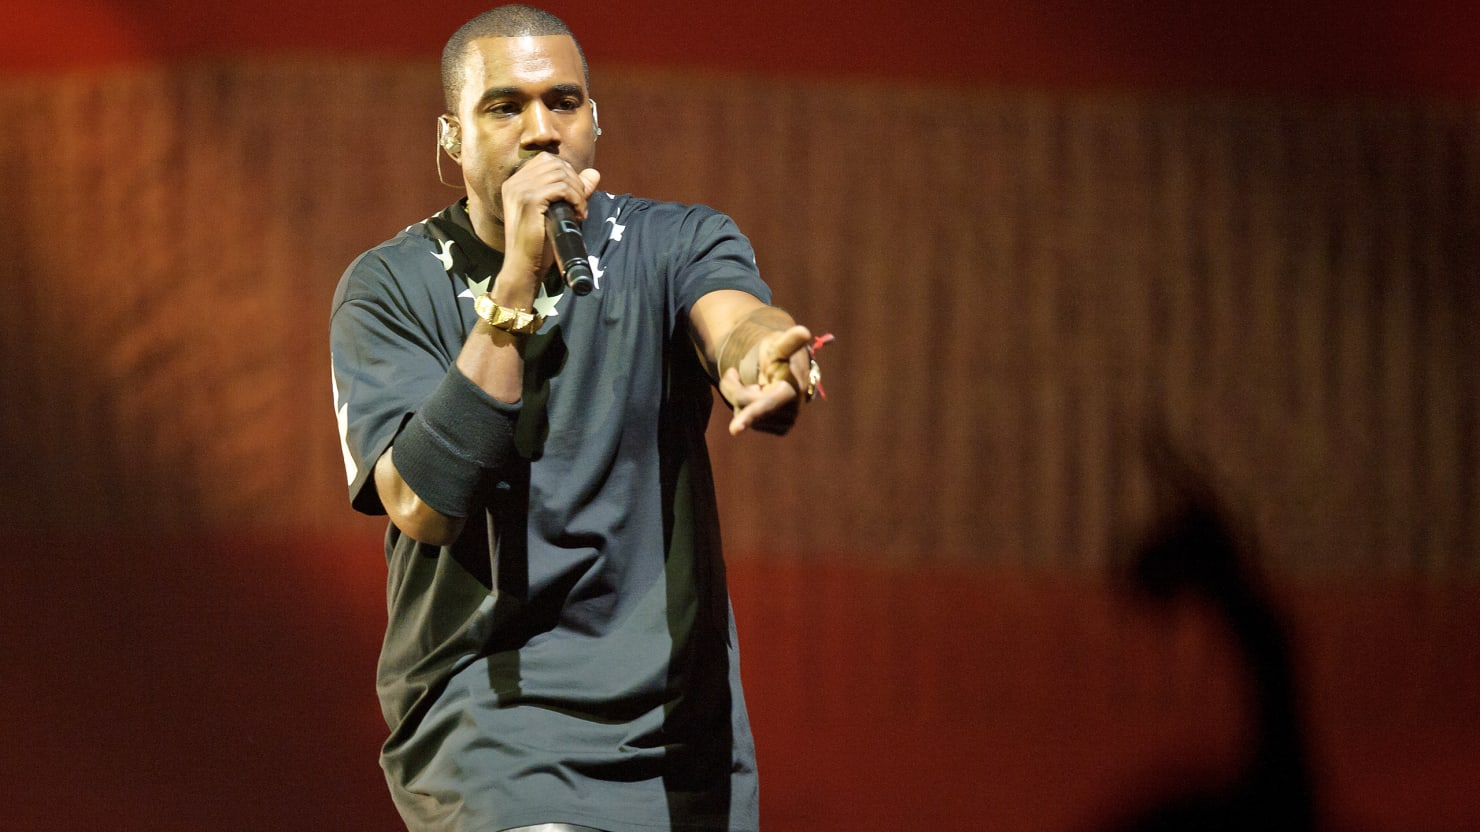 The Craziest Quotes From Kanye West's New York Times Interview